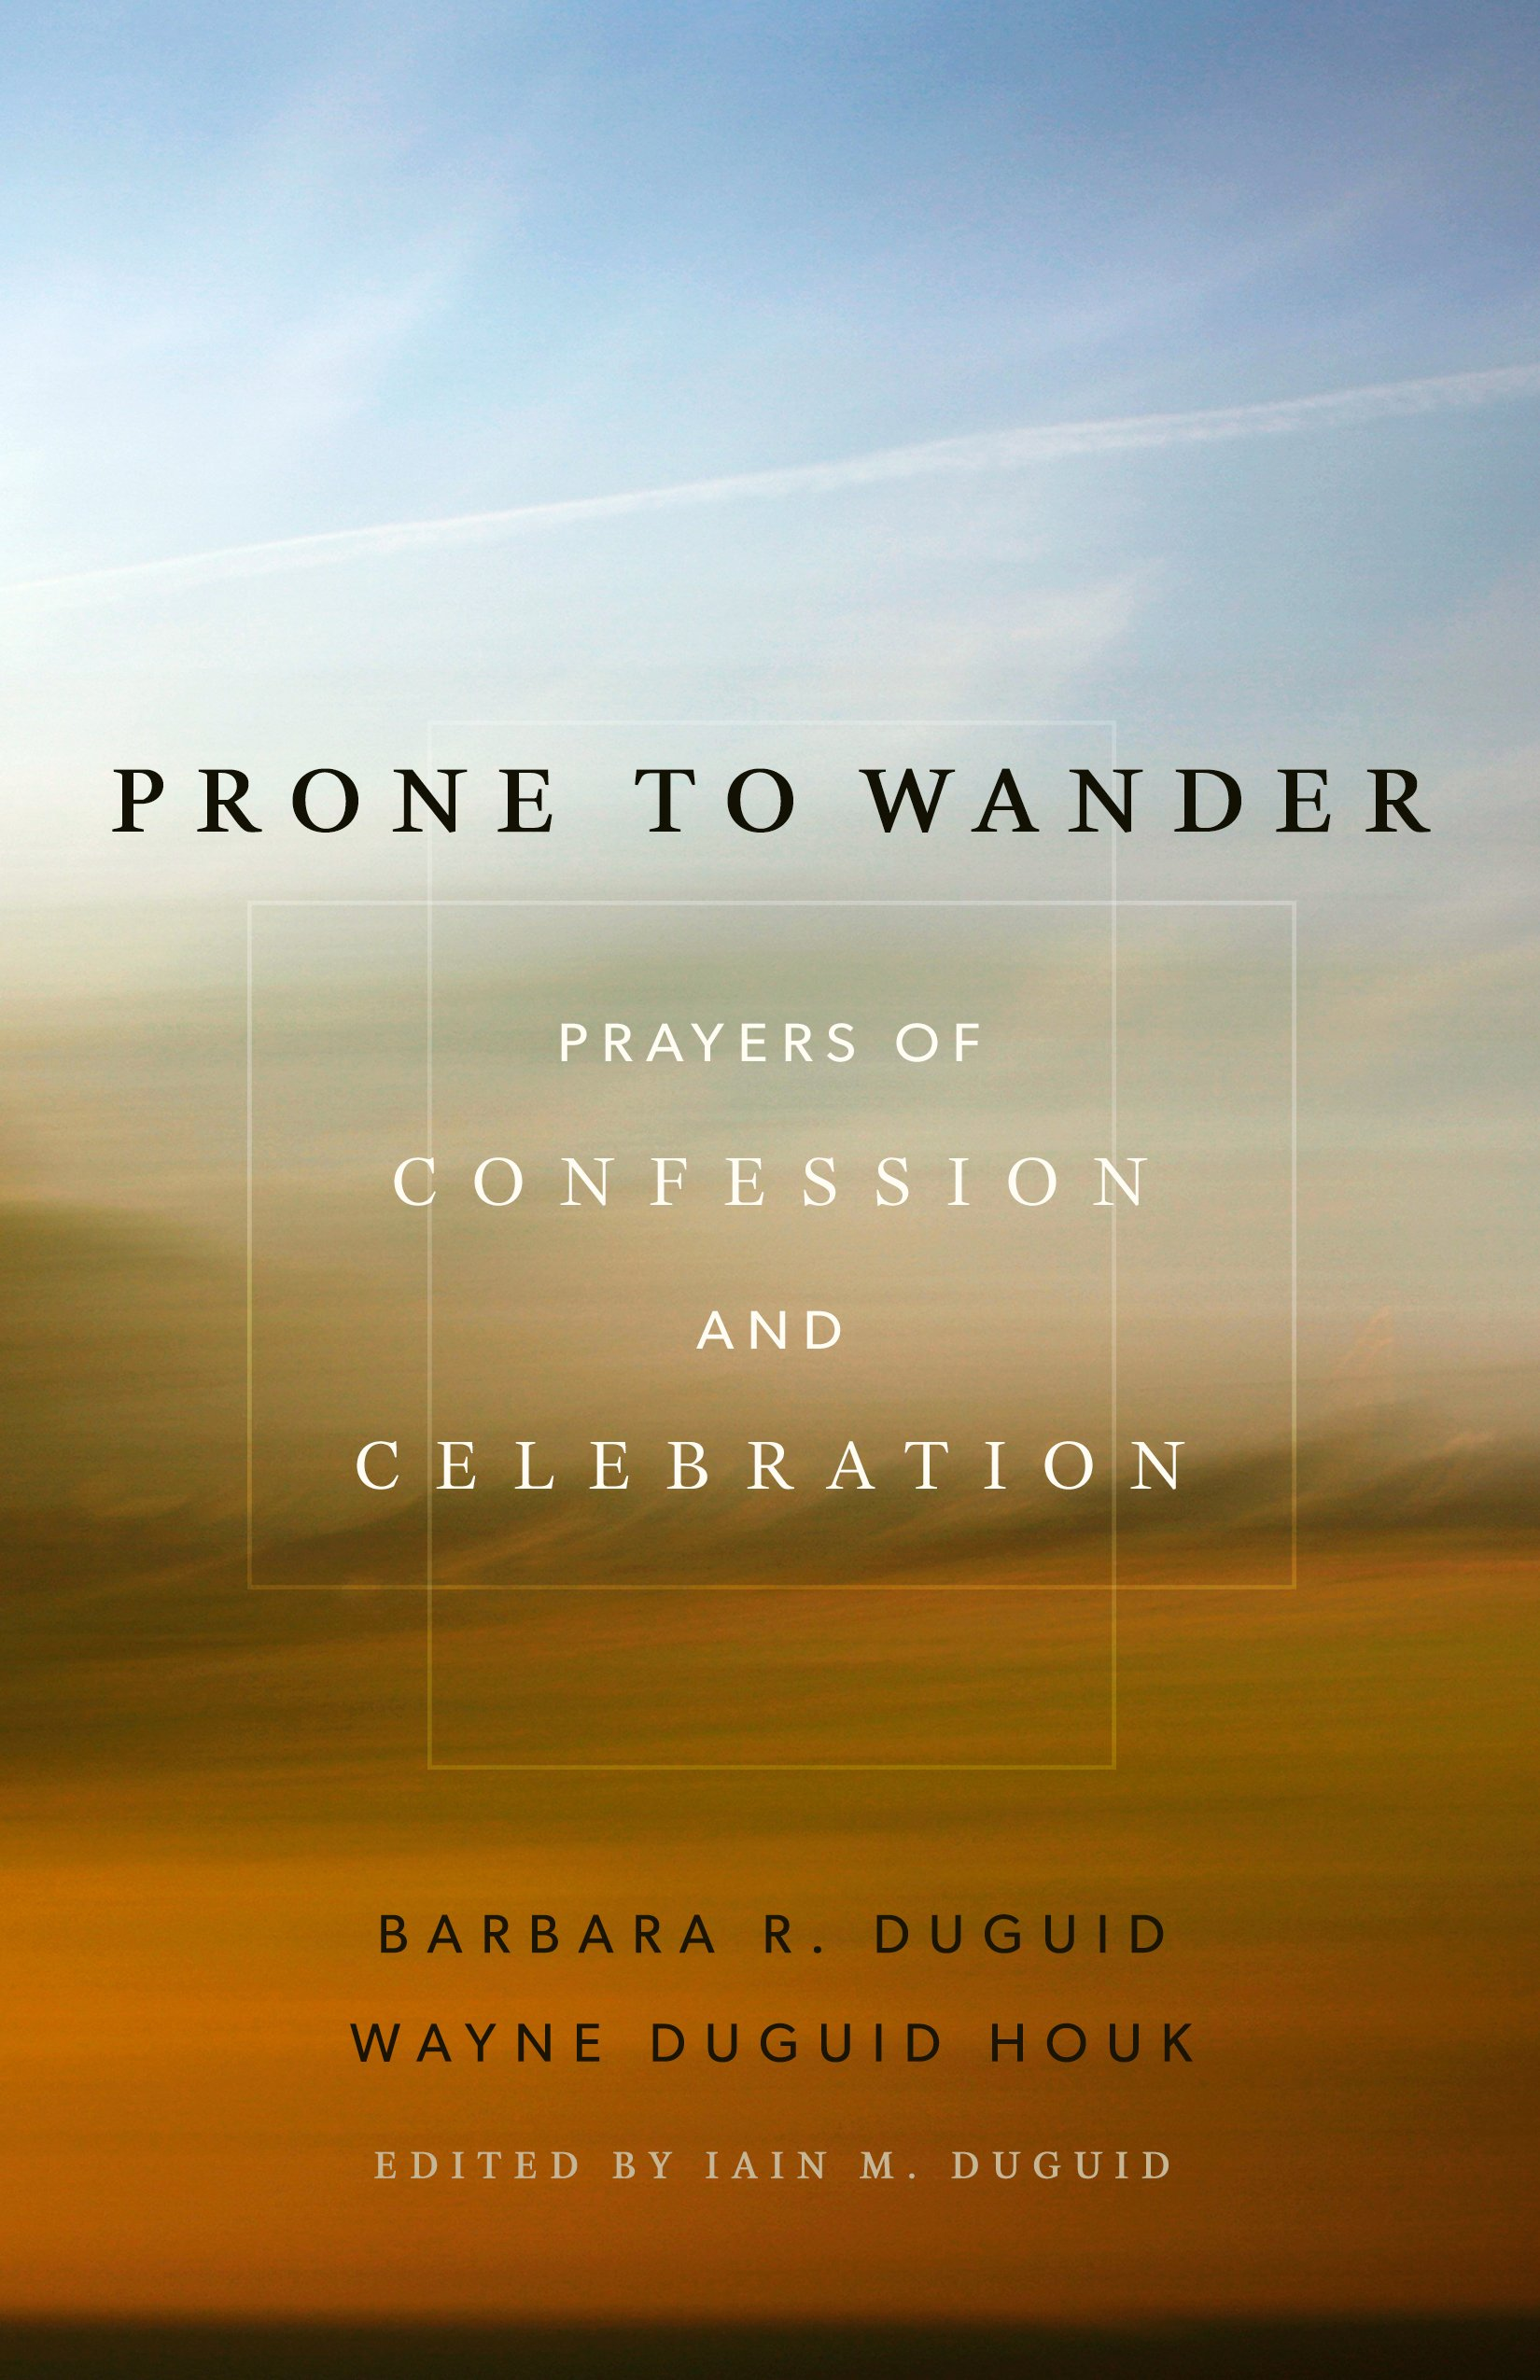 Prone to Wander: Prayers of Confession and Celebration by Barbara R. Duguid, ISBN: 9781596388796